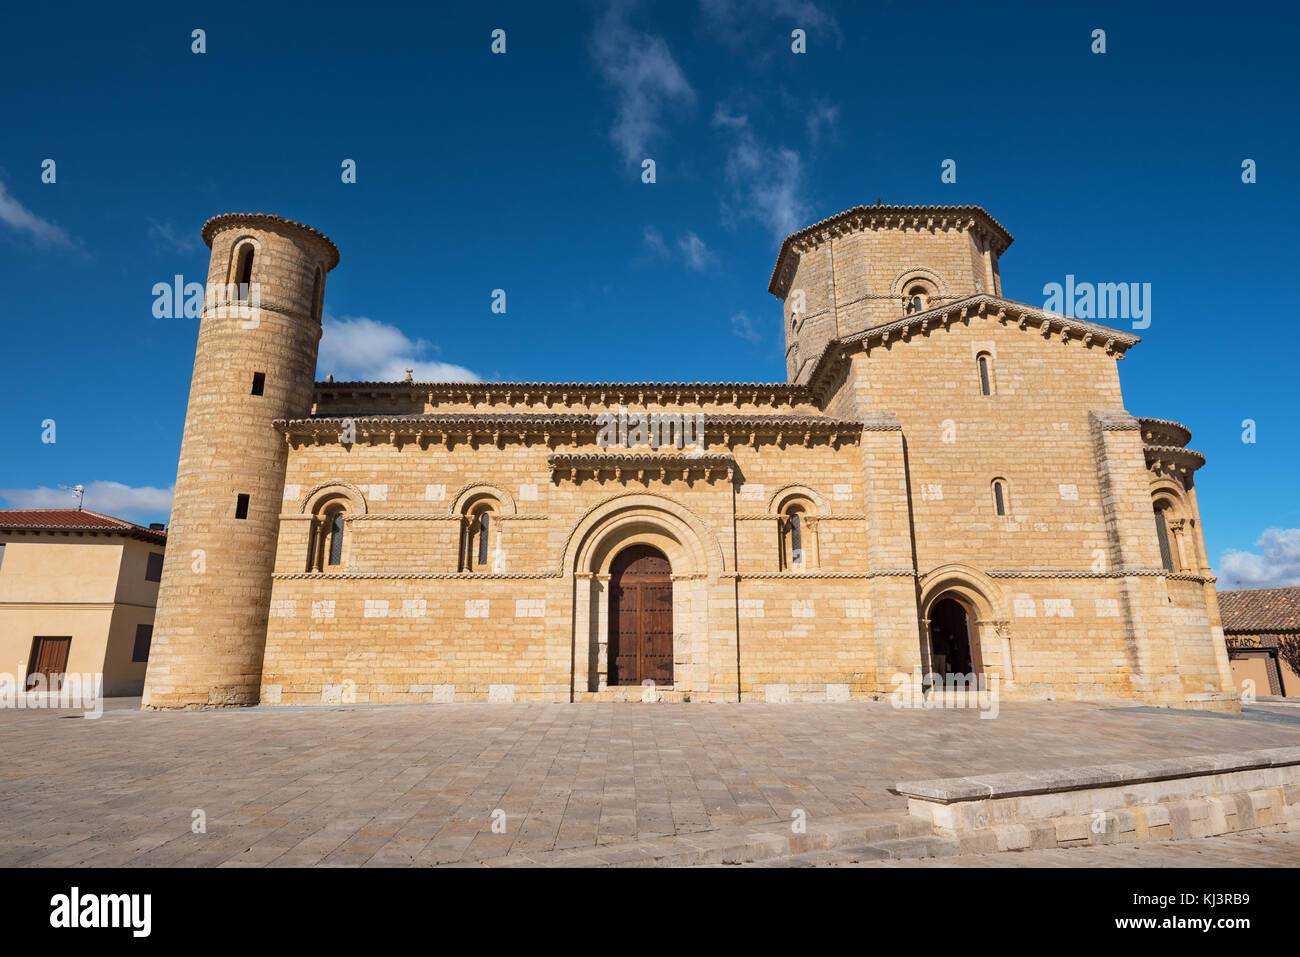 Famous romanesque church San Martin de Tours in Fromista, Palencia, Spain. - Stock Image